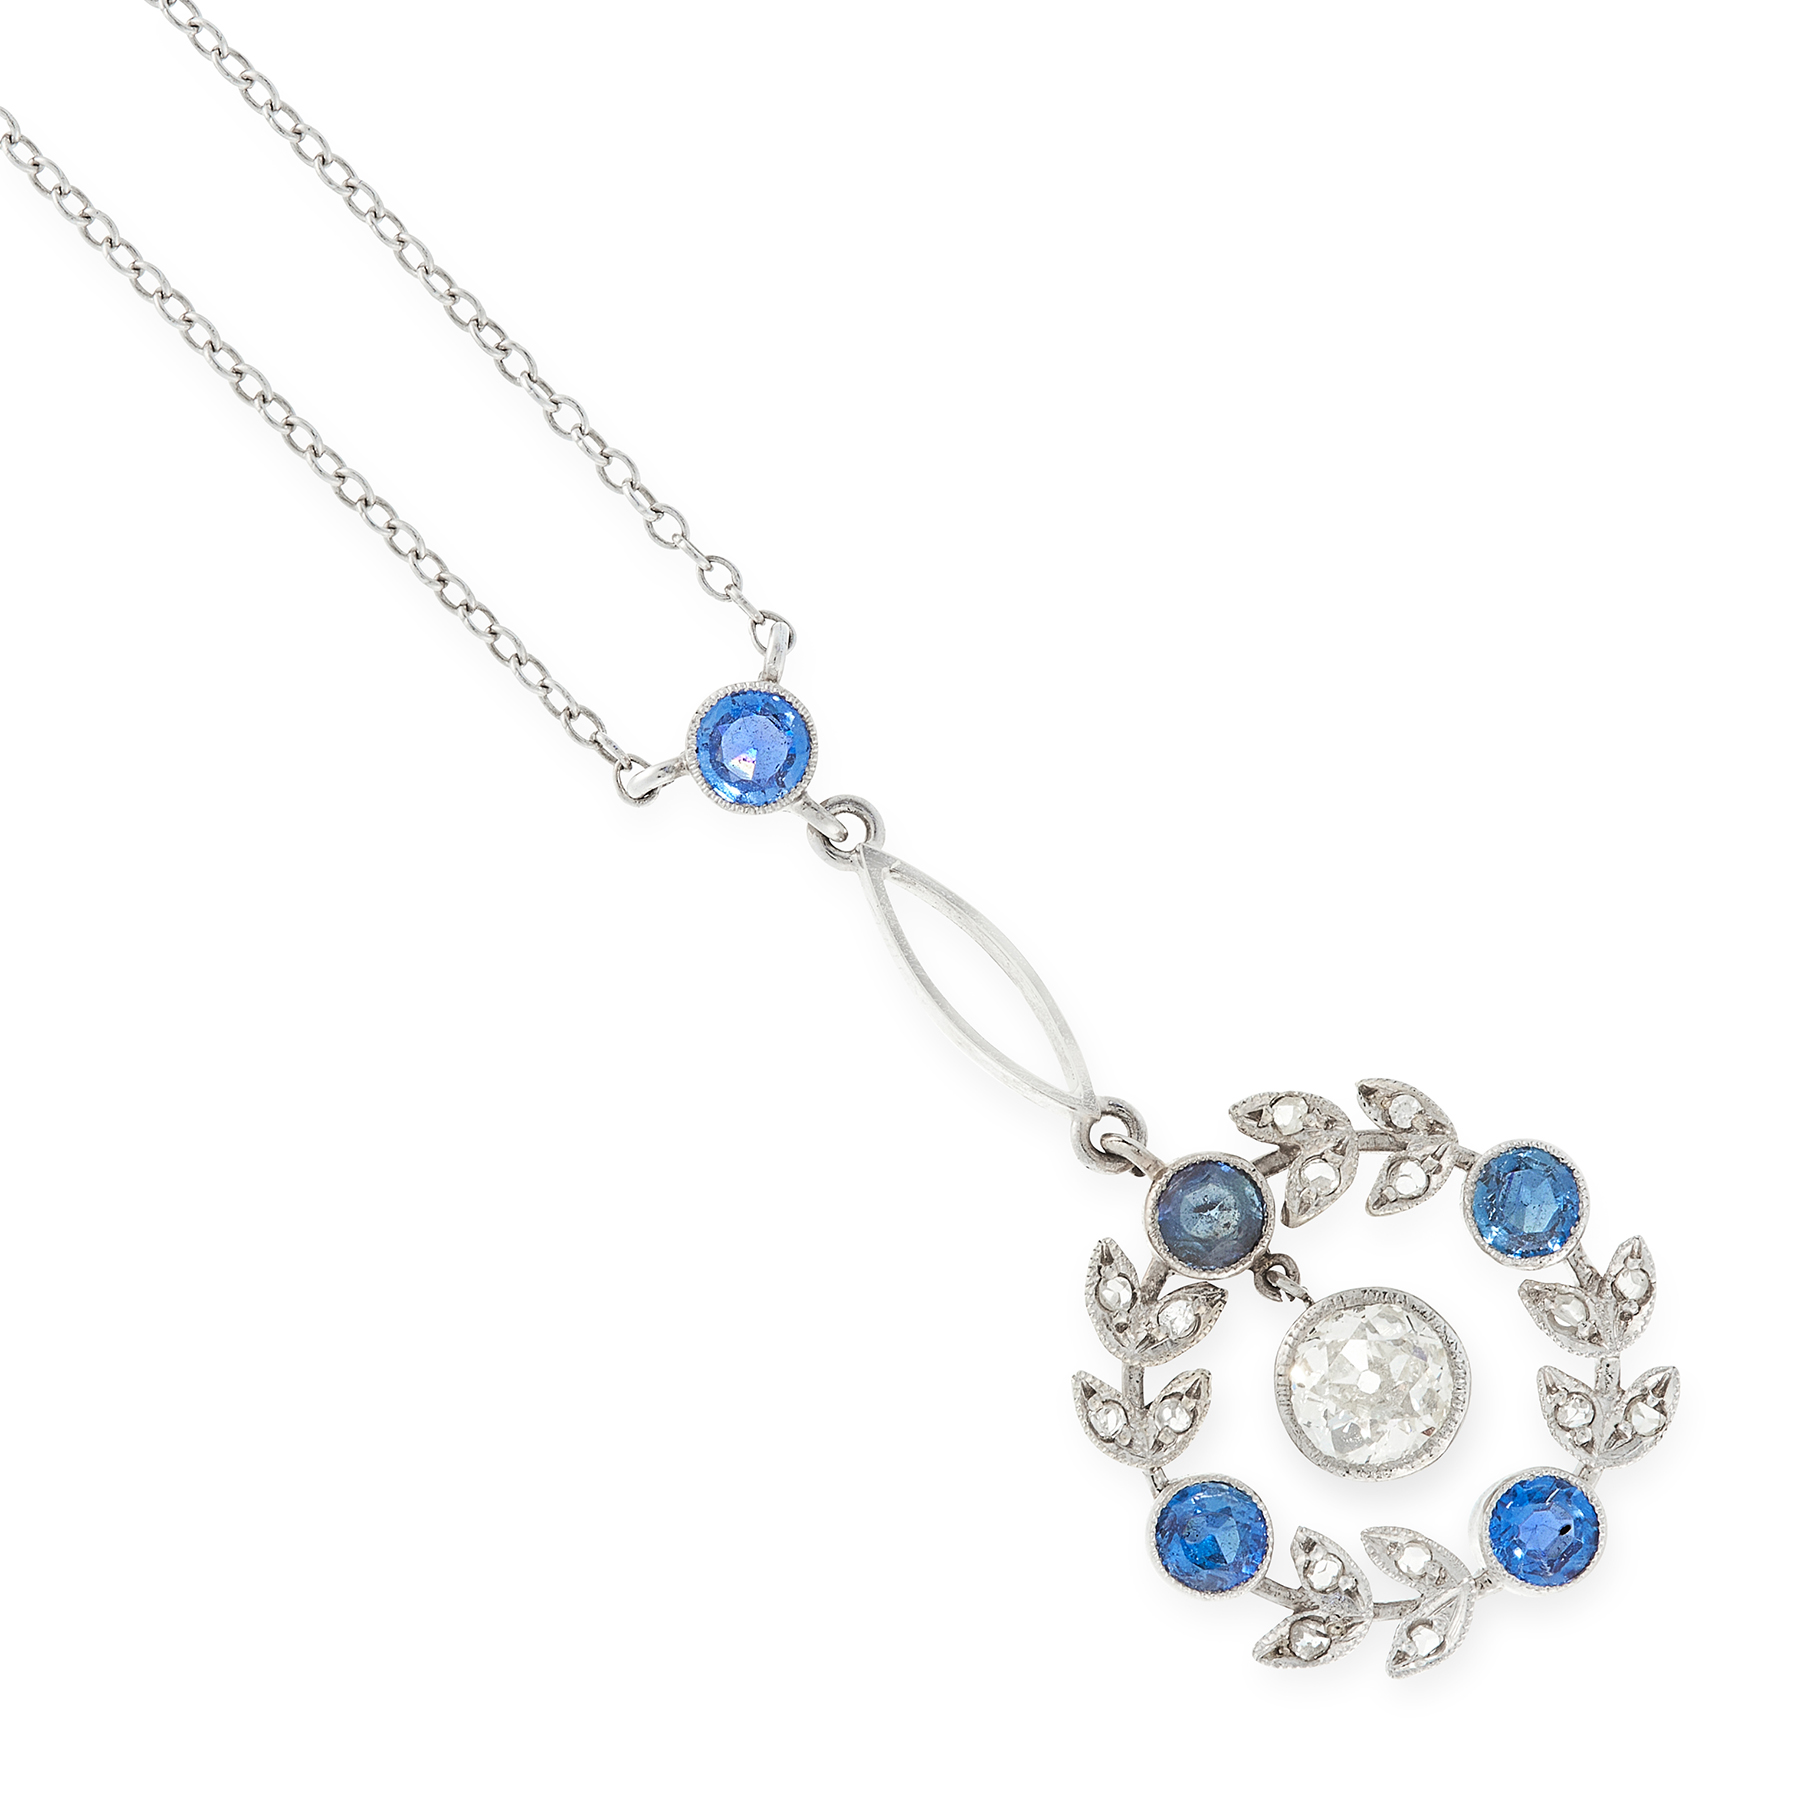 A DIAMOND AND SAPPHIRE PENDANT NECKLACE set with an old cut diamond of 0.55 carats, suspended within